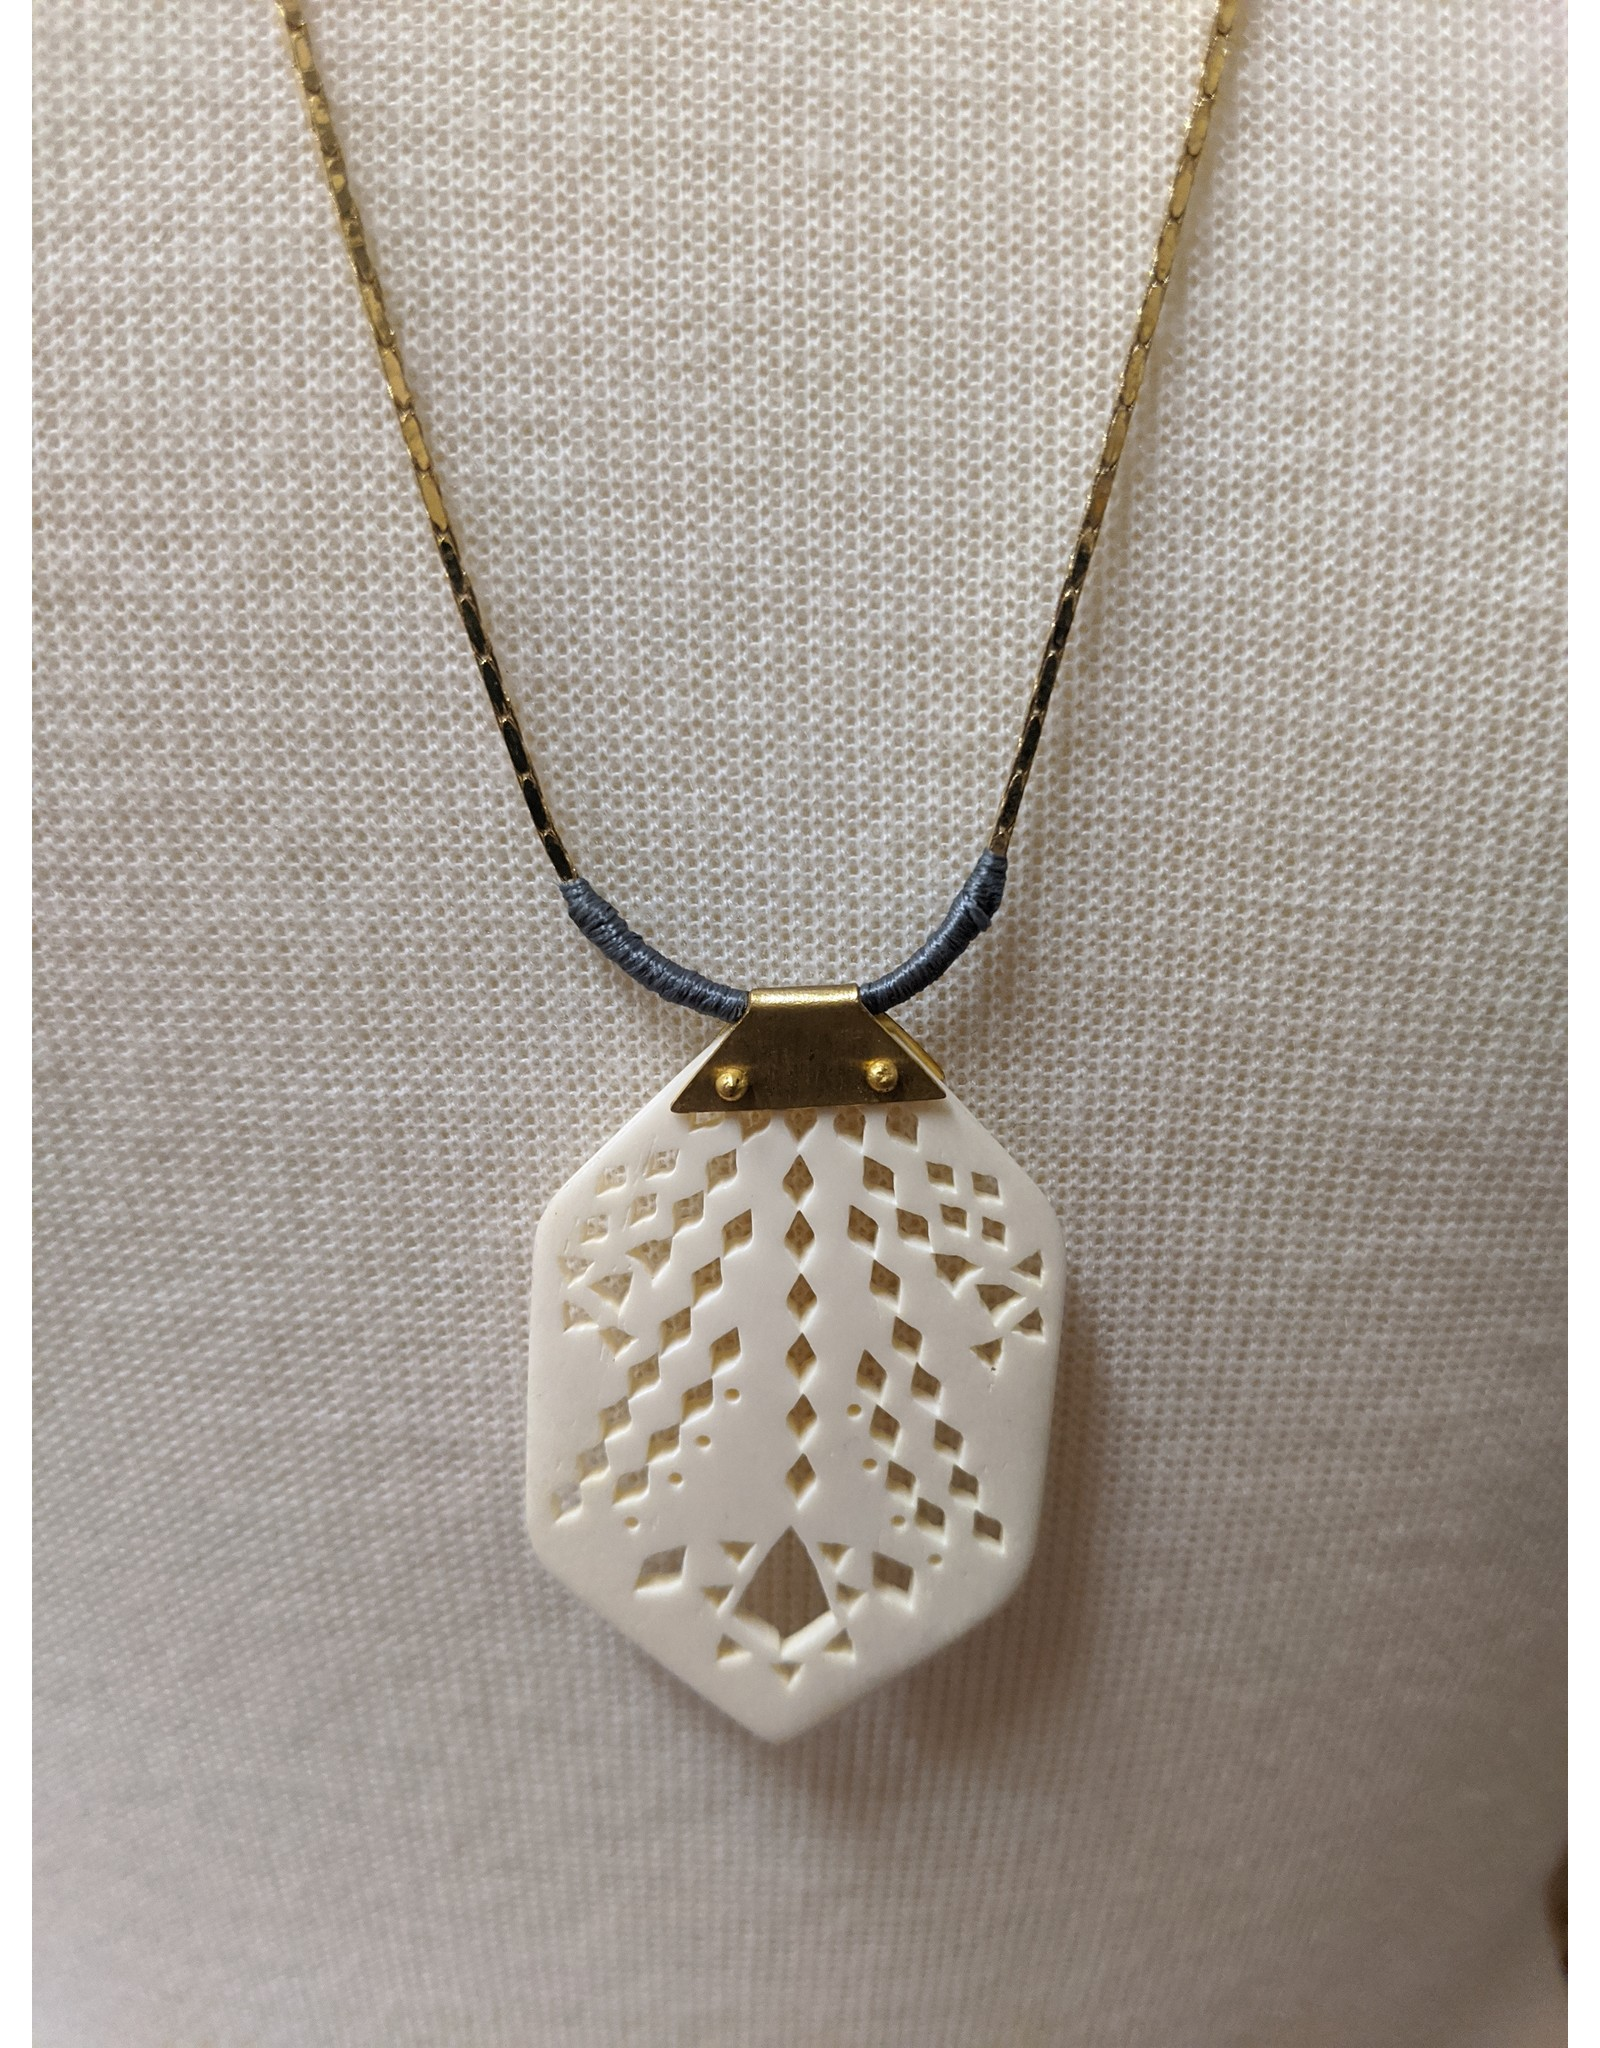 Ten Thousand Villages Bone Pendant Necklace